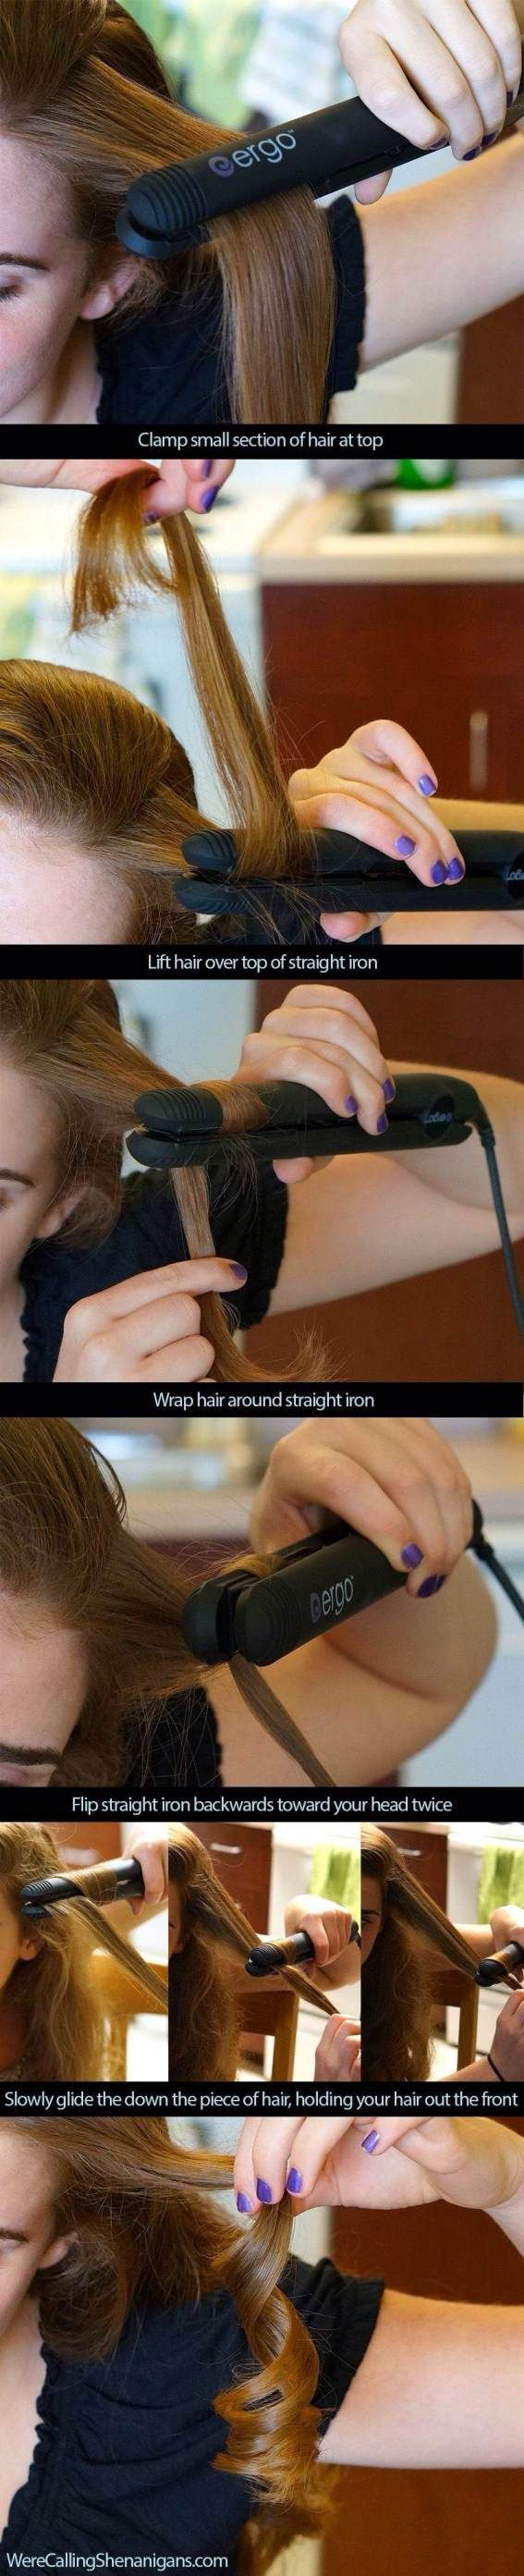 How to Curl hair with flat iron tips